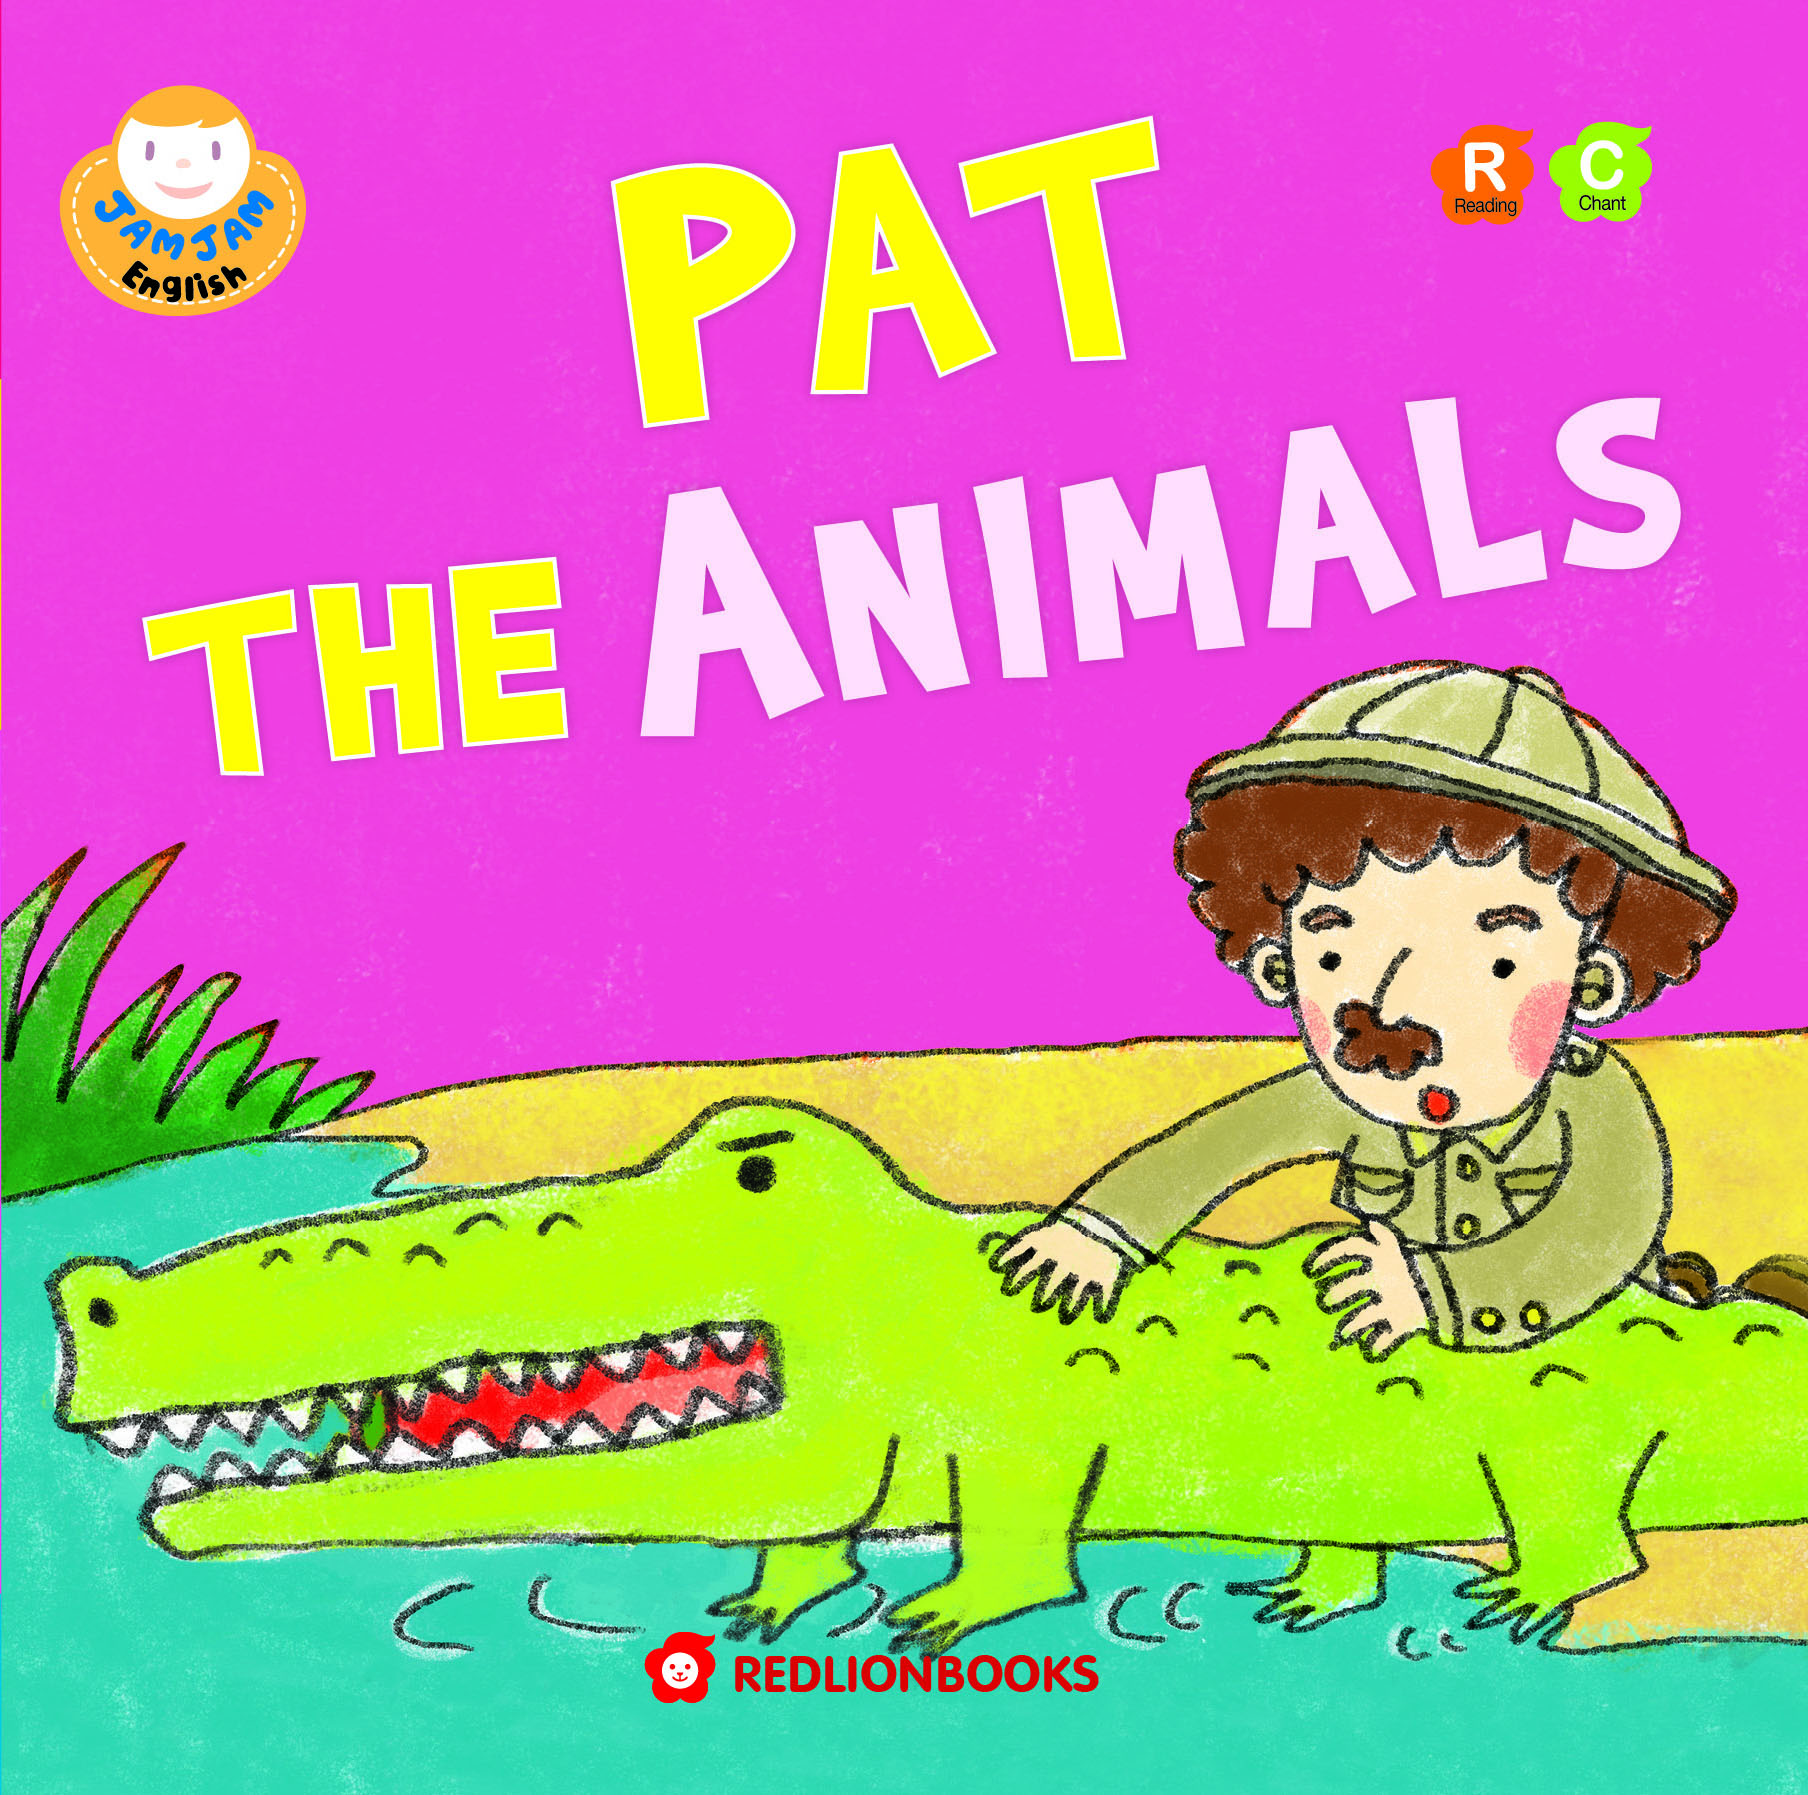 JAMJAM Enaglish PAT THE ANIMALS